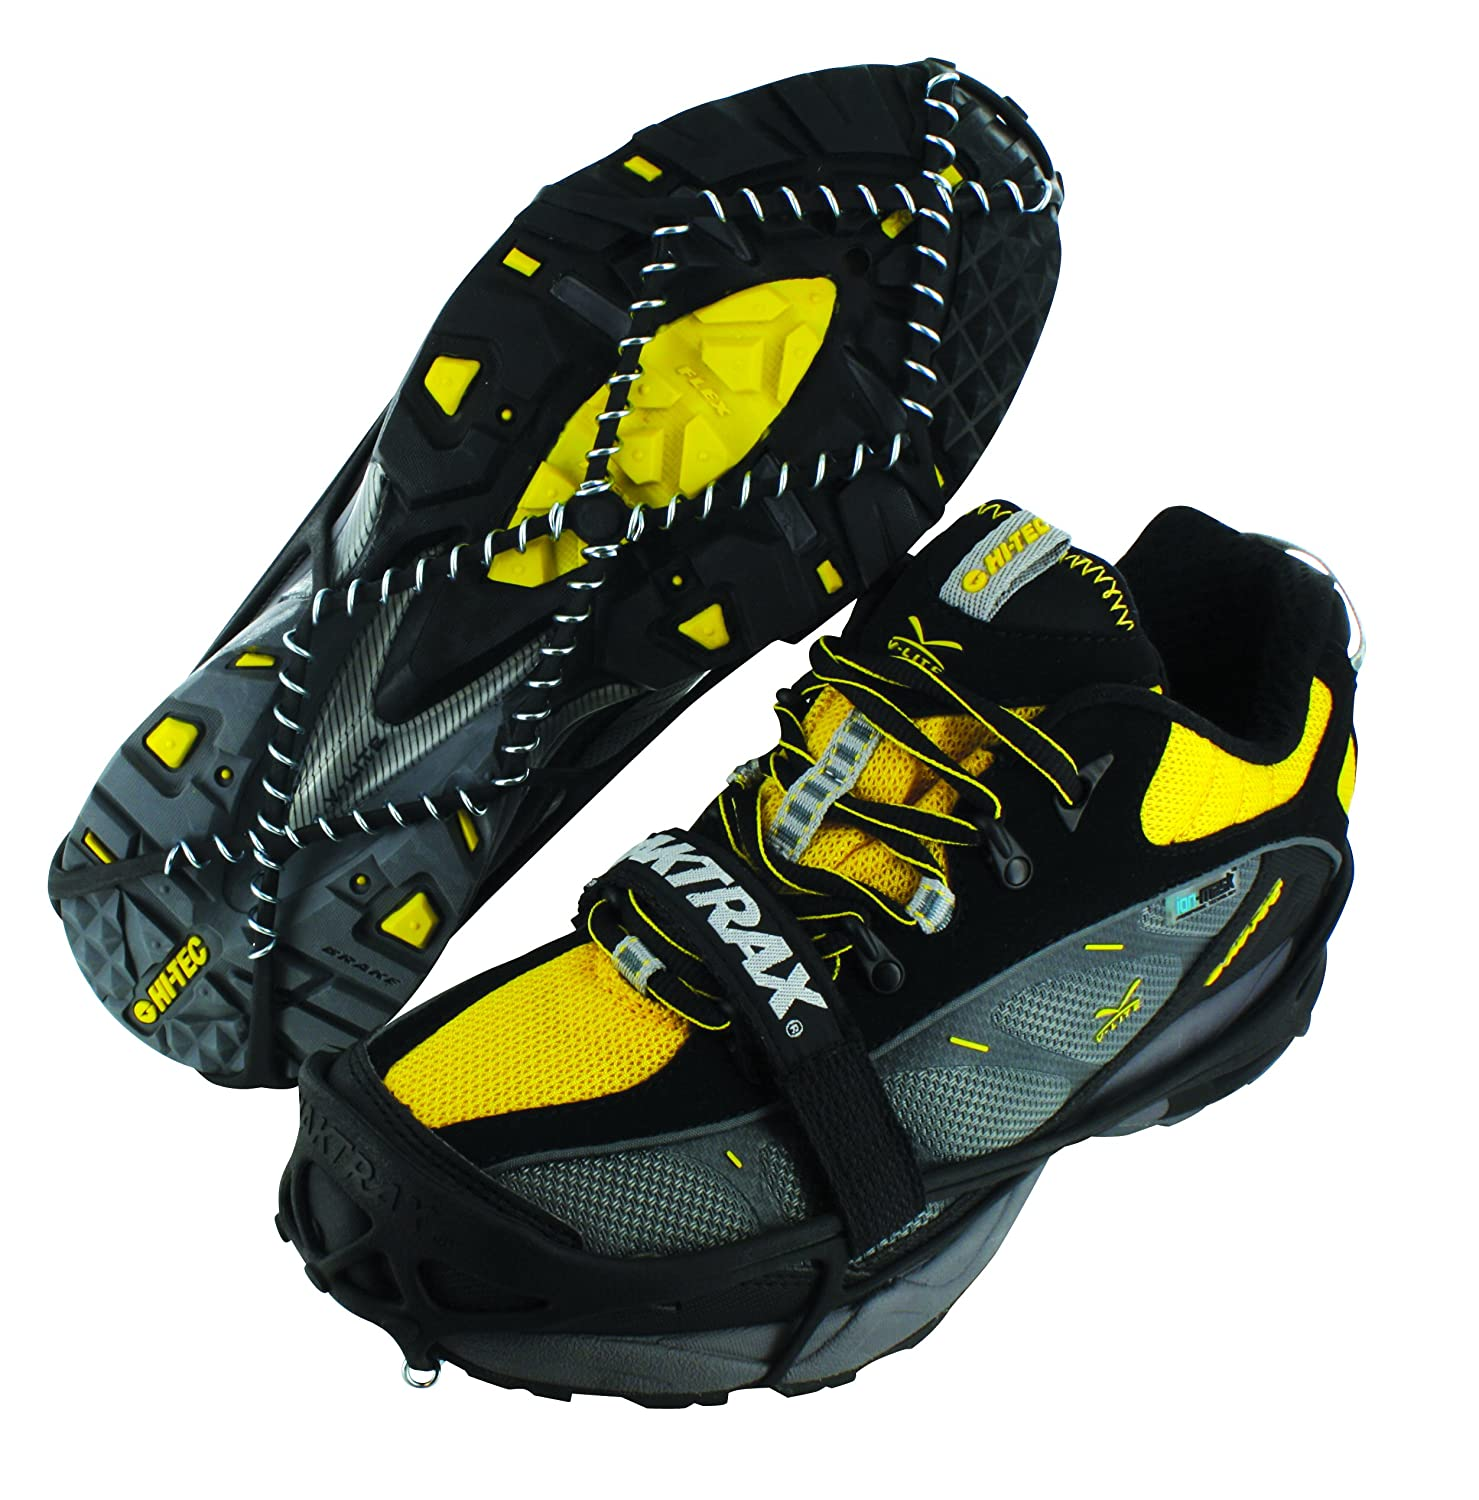 YakTrax Pro Winter Traction for Walking, Jogging, or Hiking on Snow and Ice